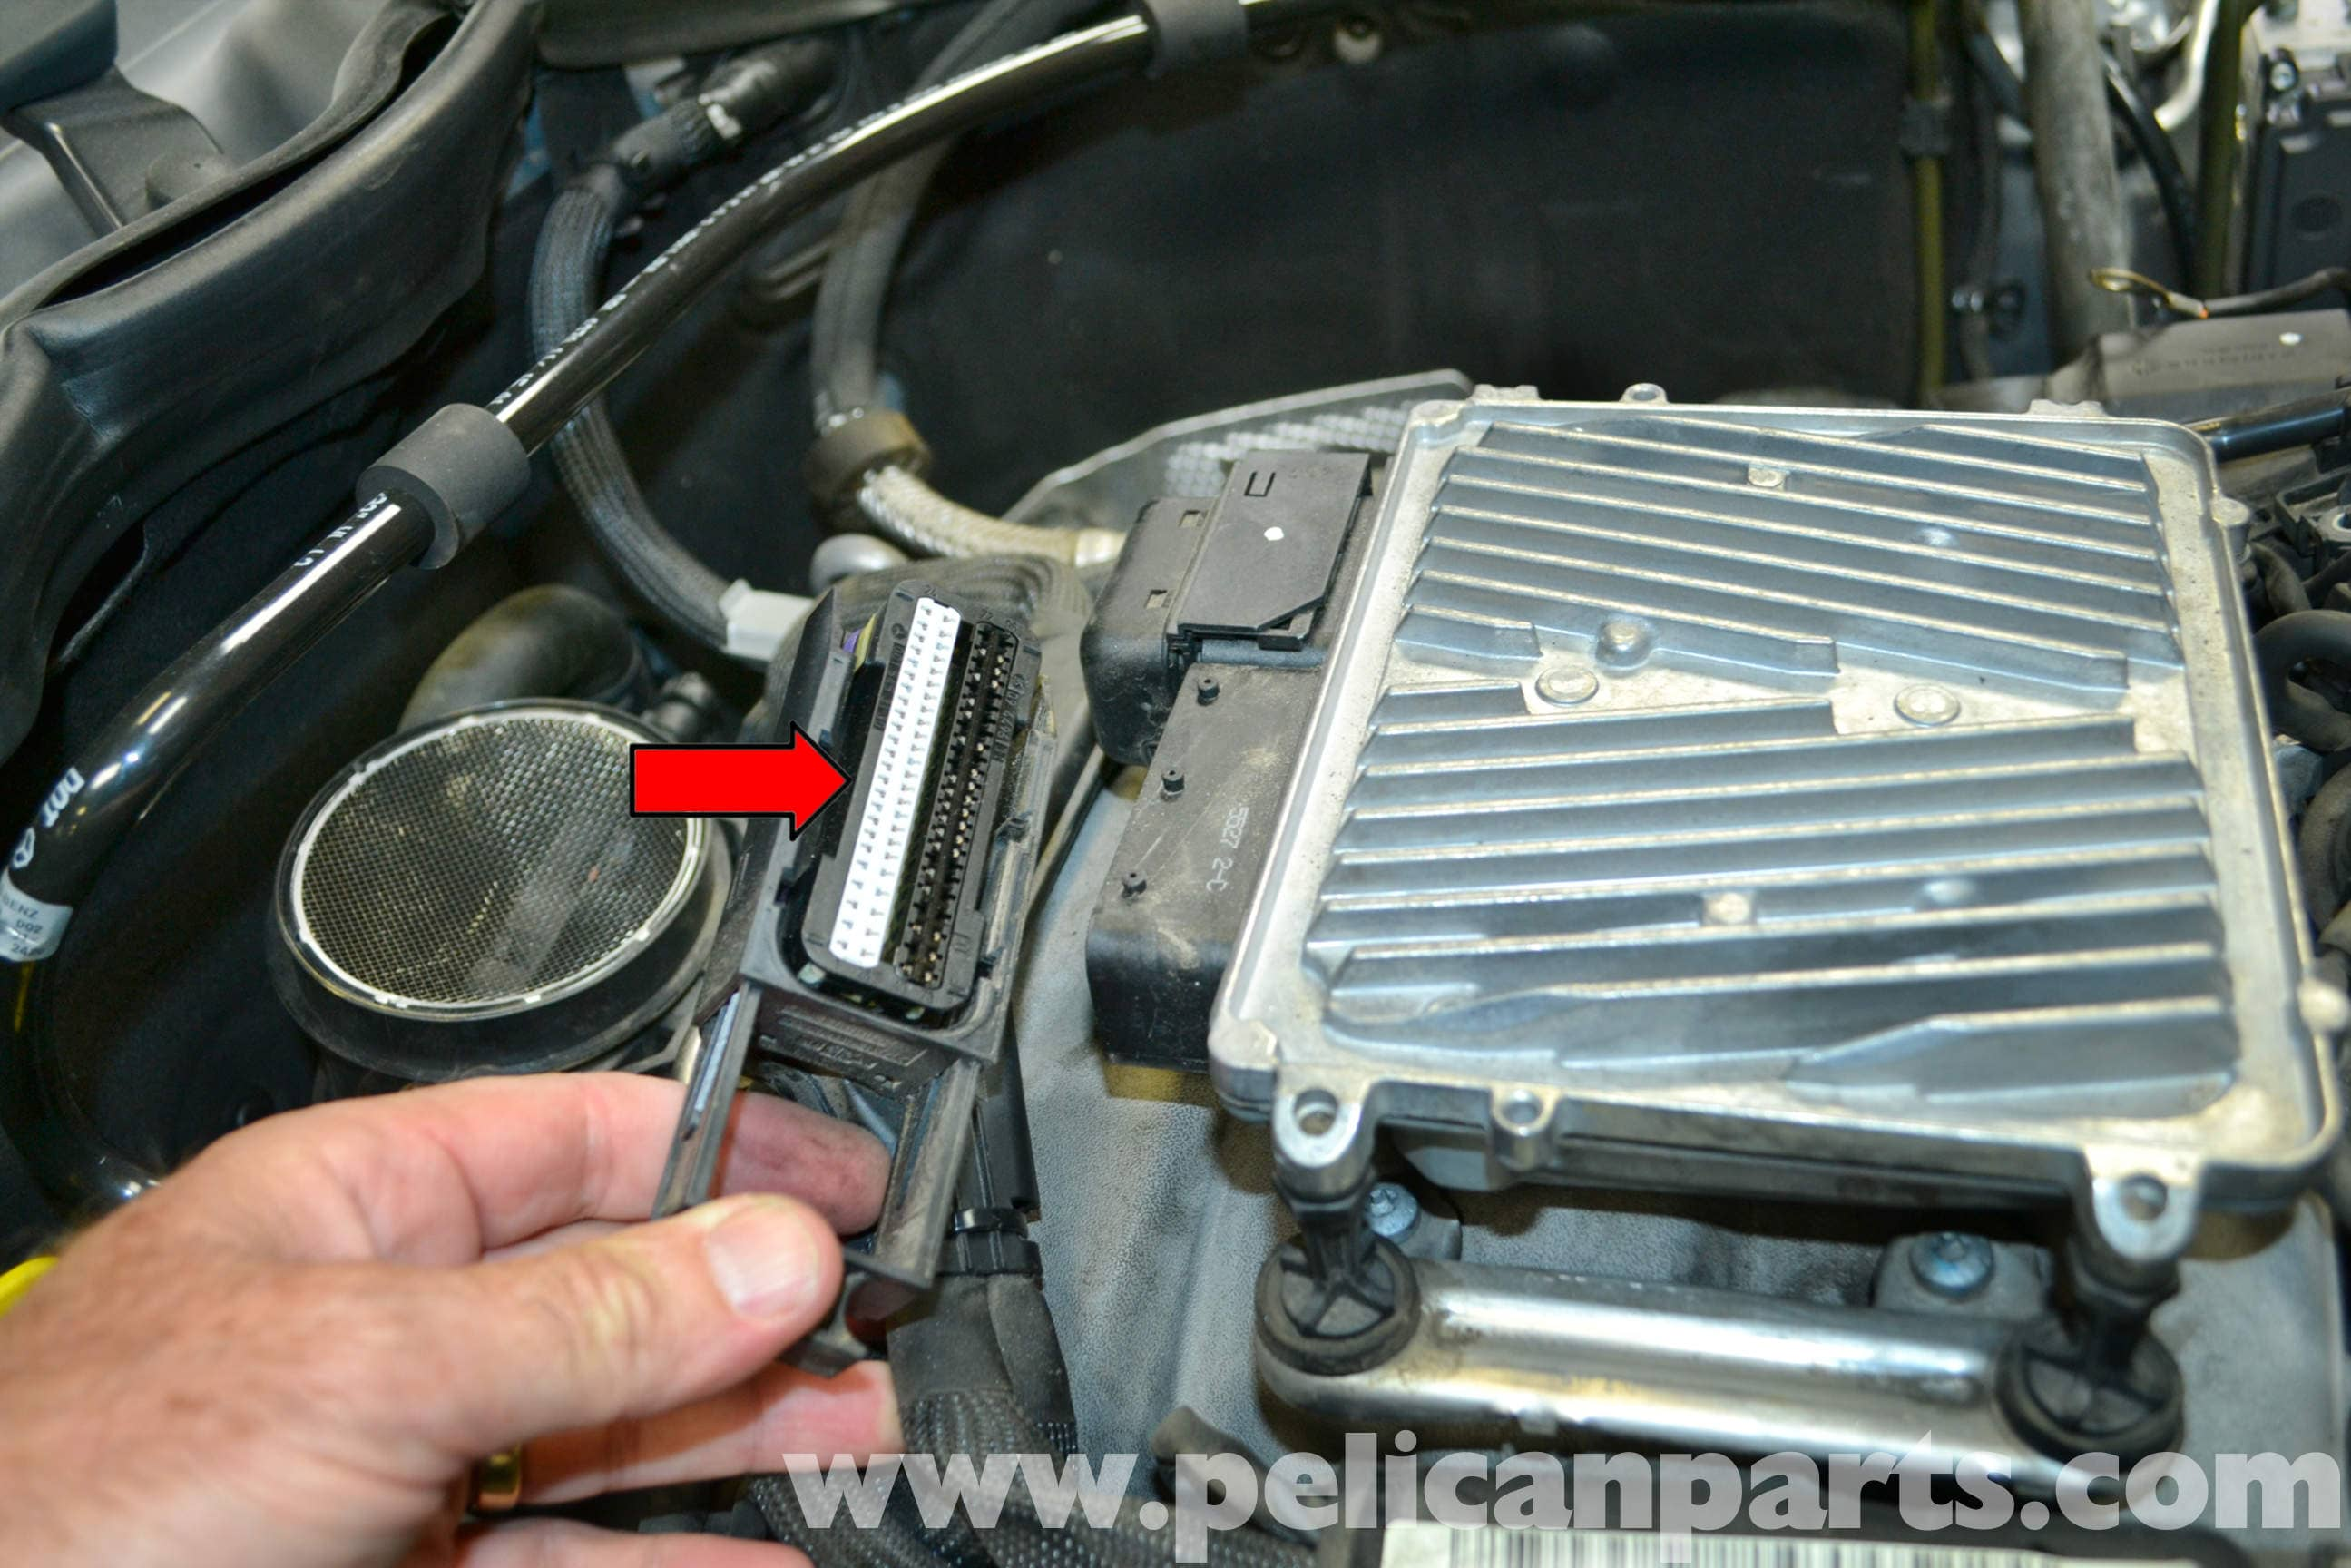 Mercedes-Benz W204 ECU Removal - (2008-2014) C250, C300, C350 ...